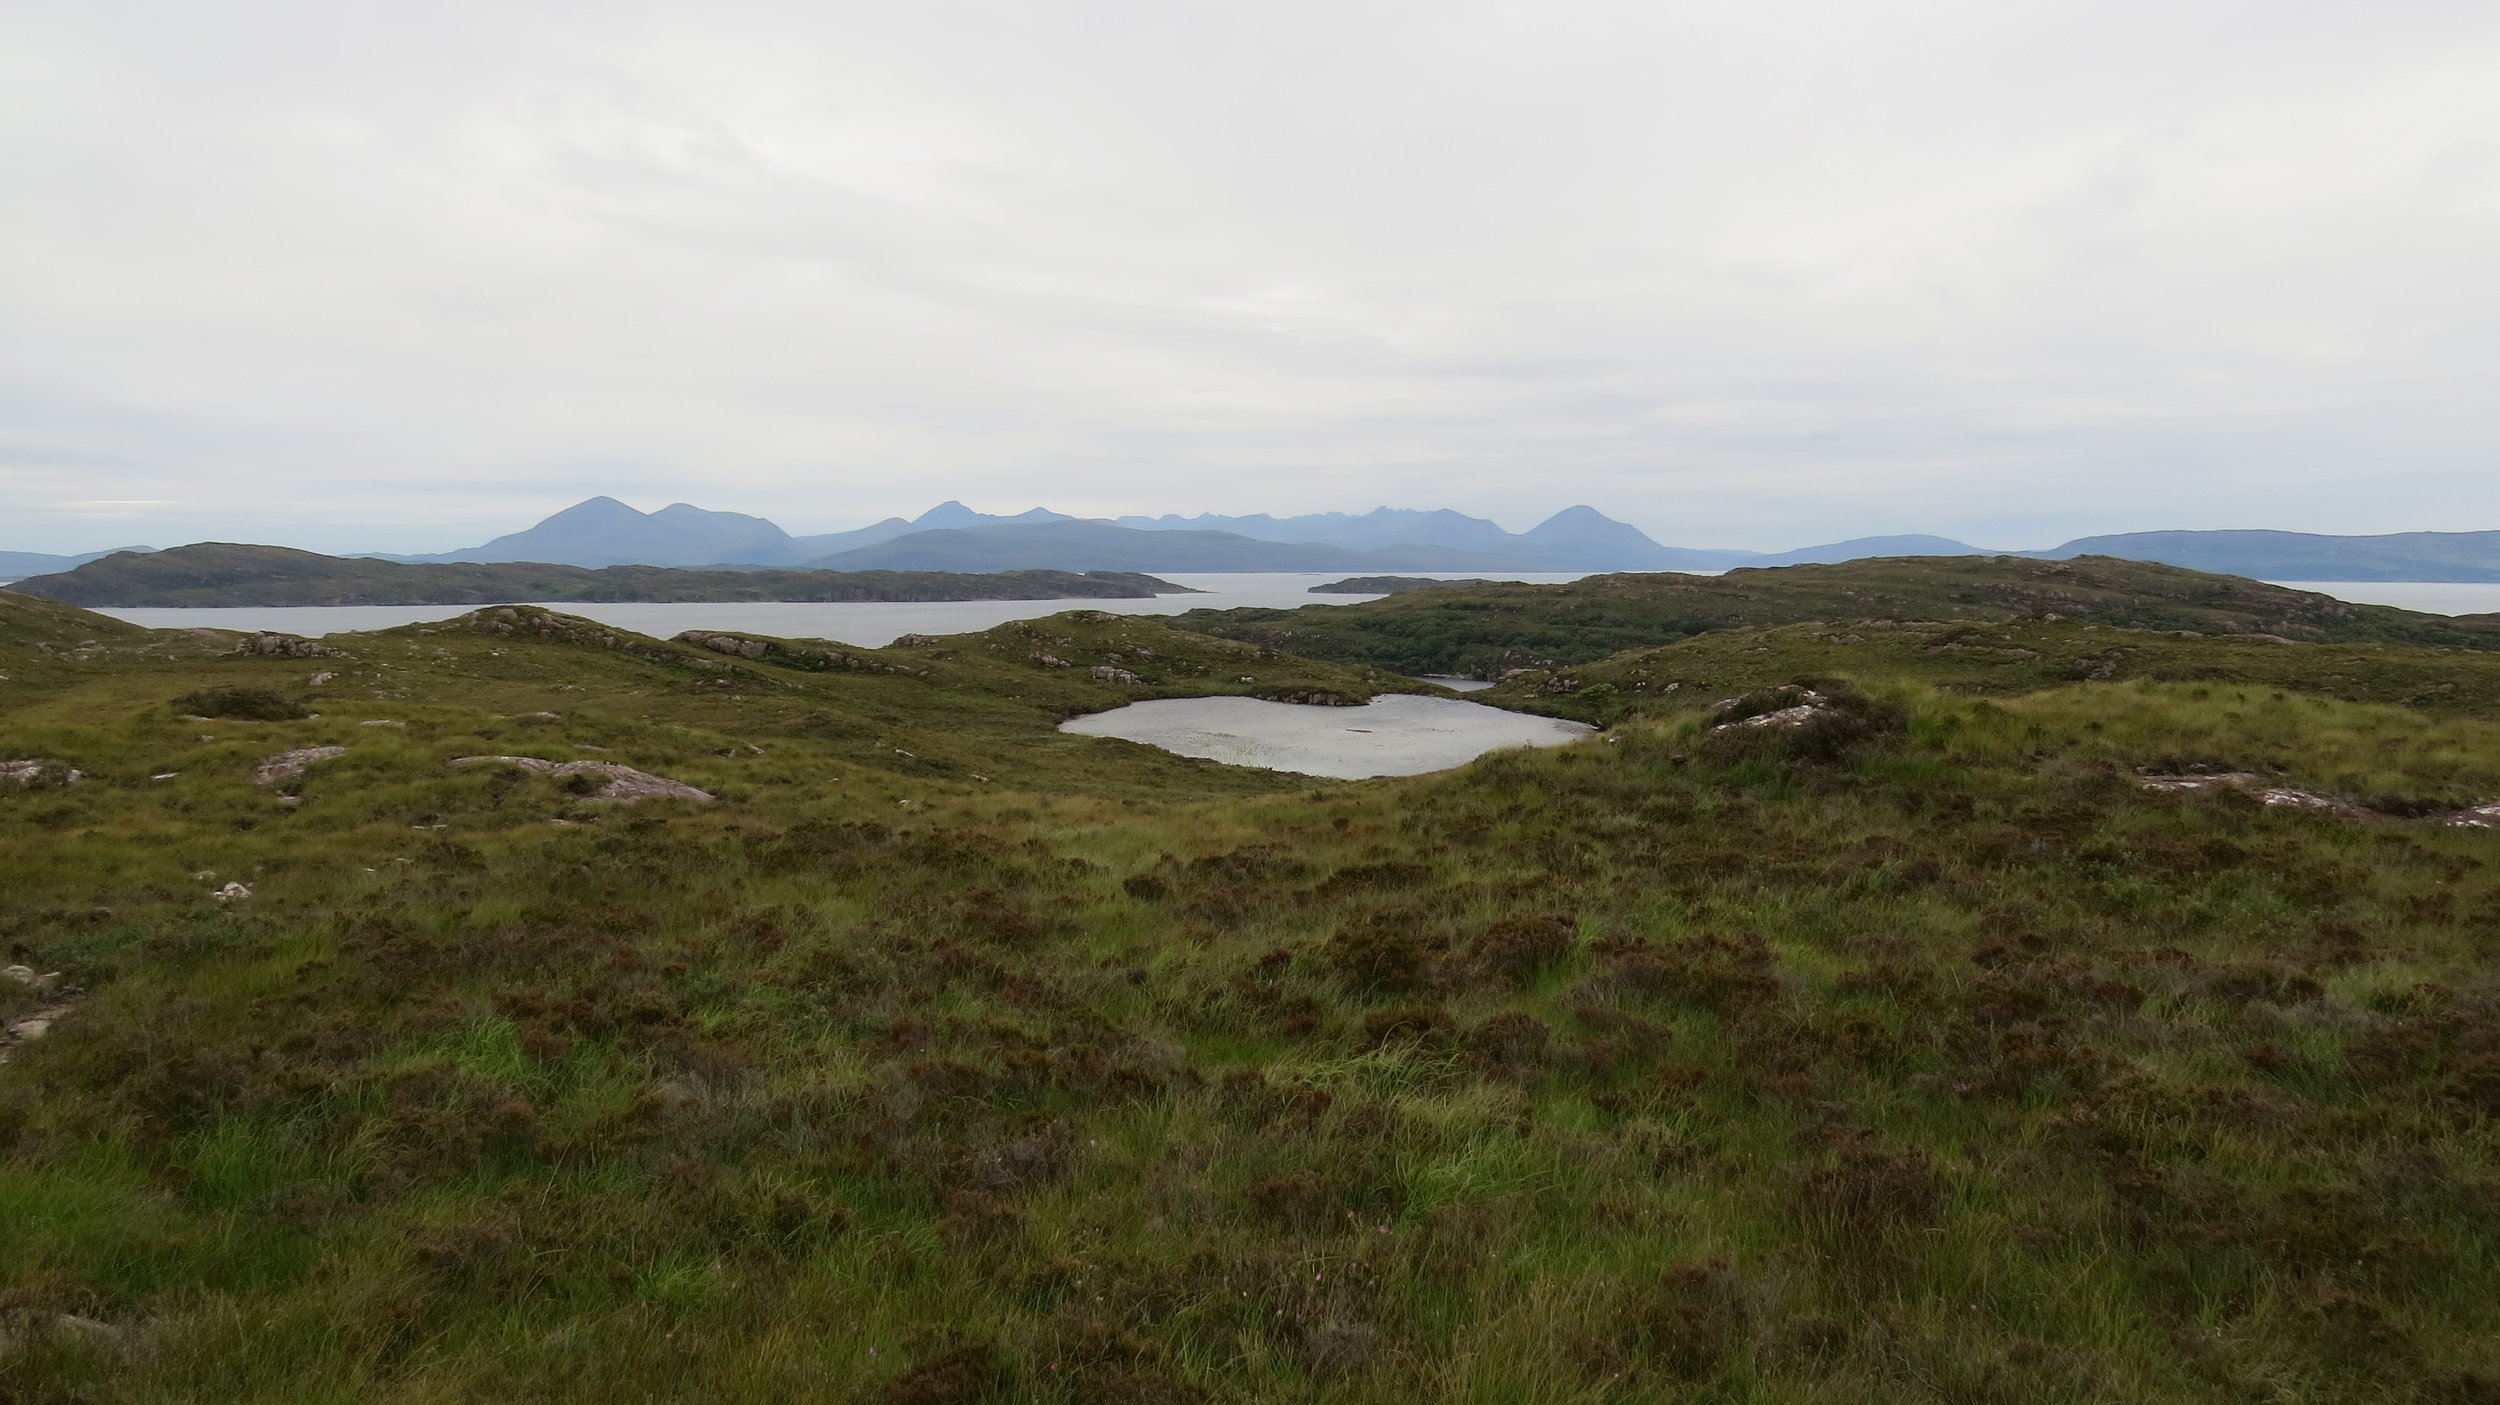 Looking towards Skye